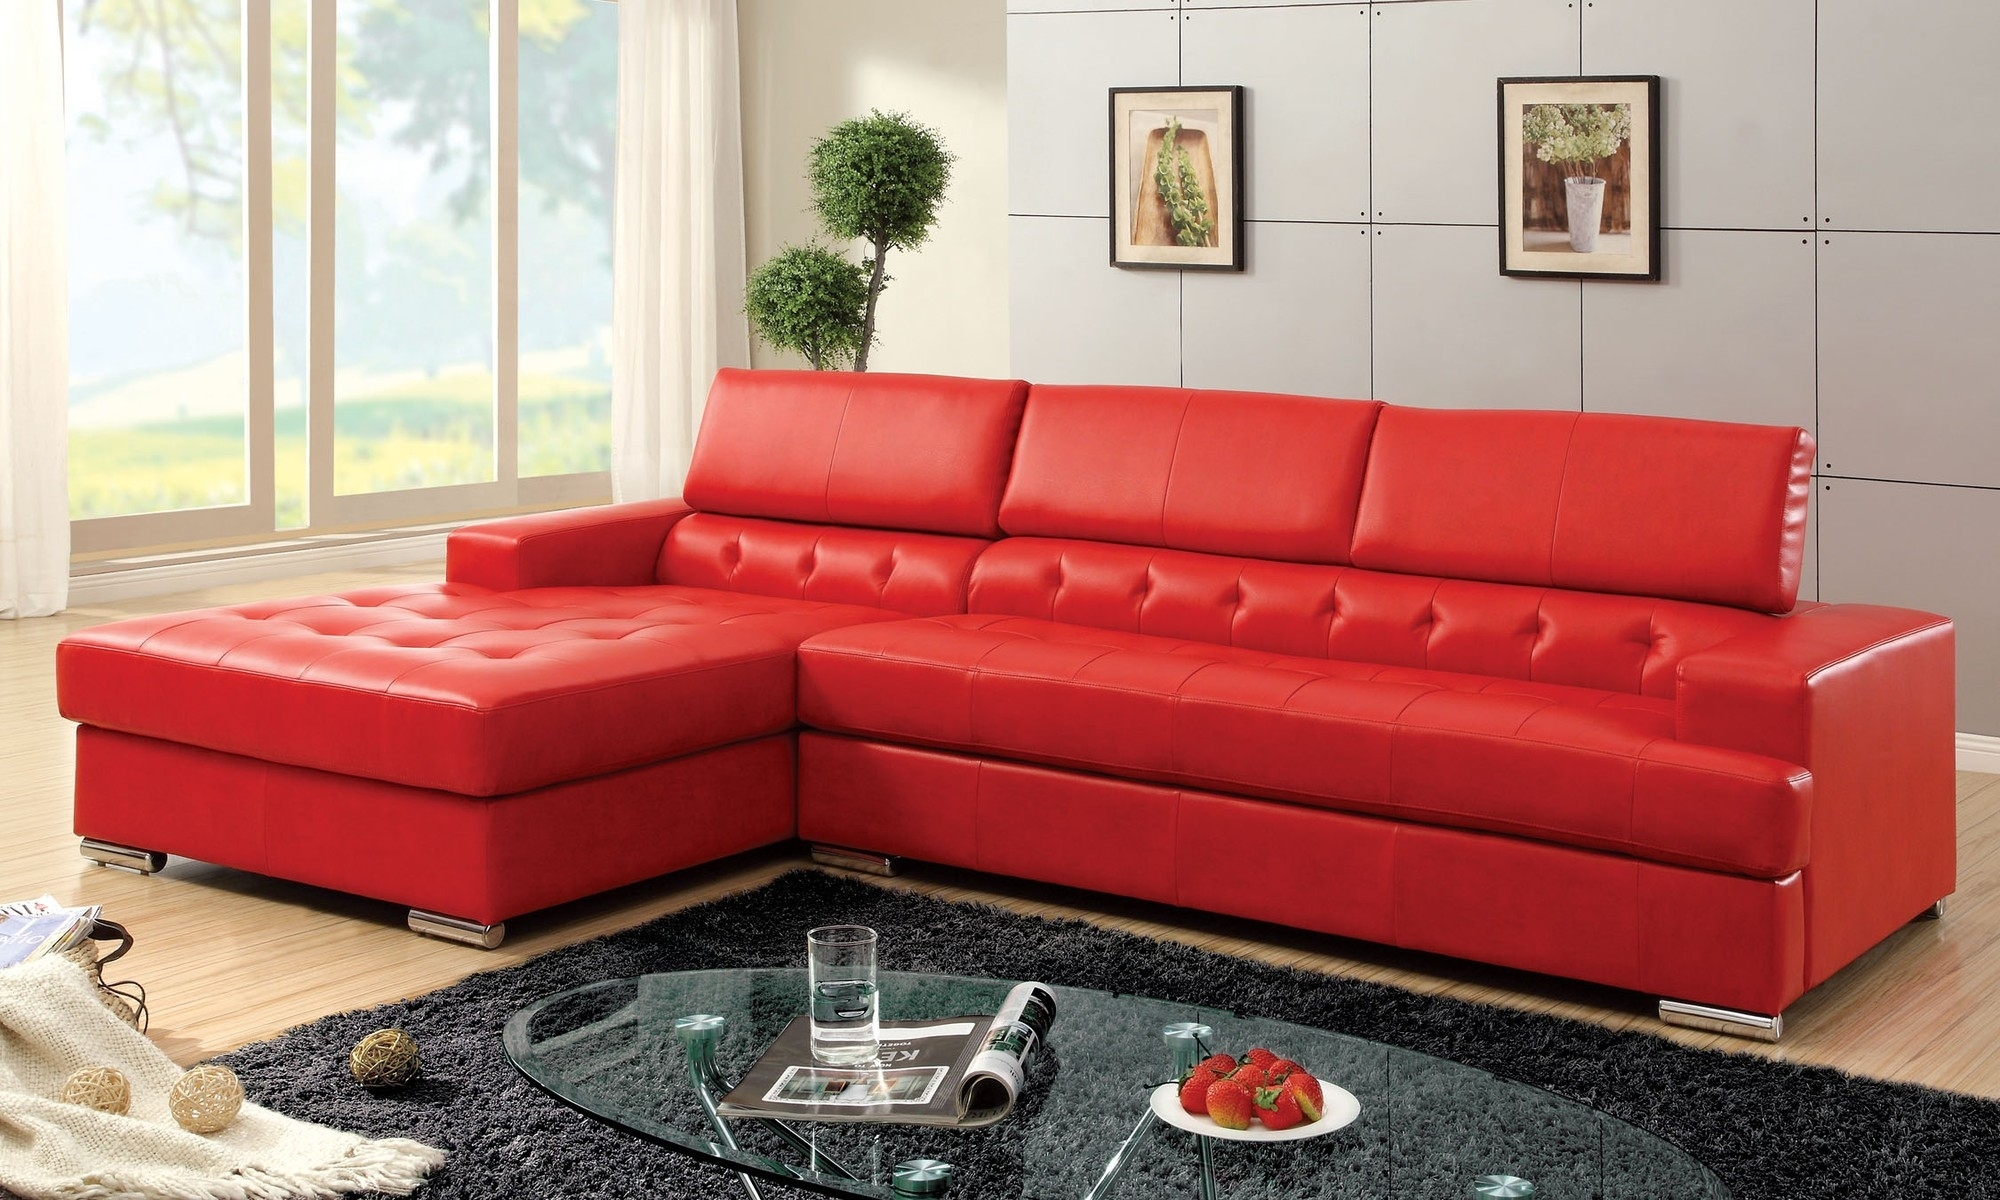 Sofa : Large Leather Sectional With Chaise L Couch With Chaise in Red Leather Sectional Sofas With Recliners (Image 14 of 15)